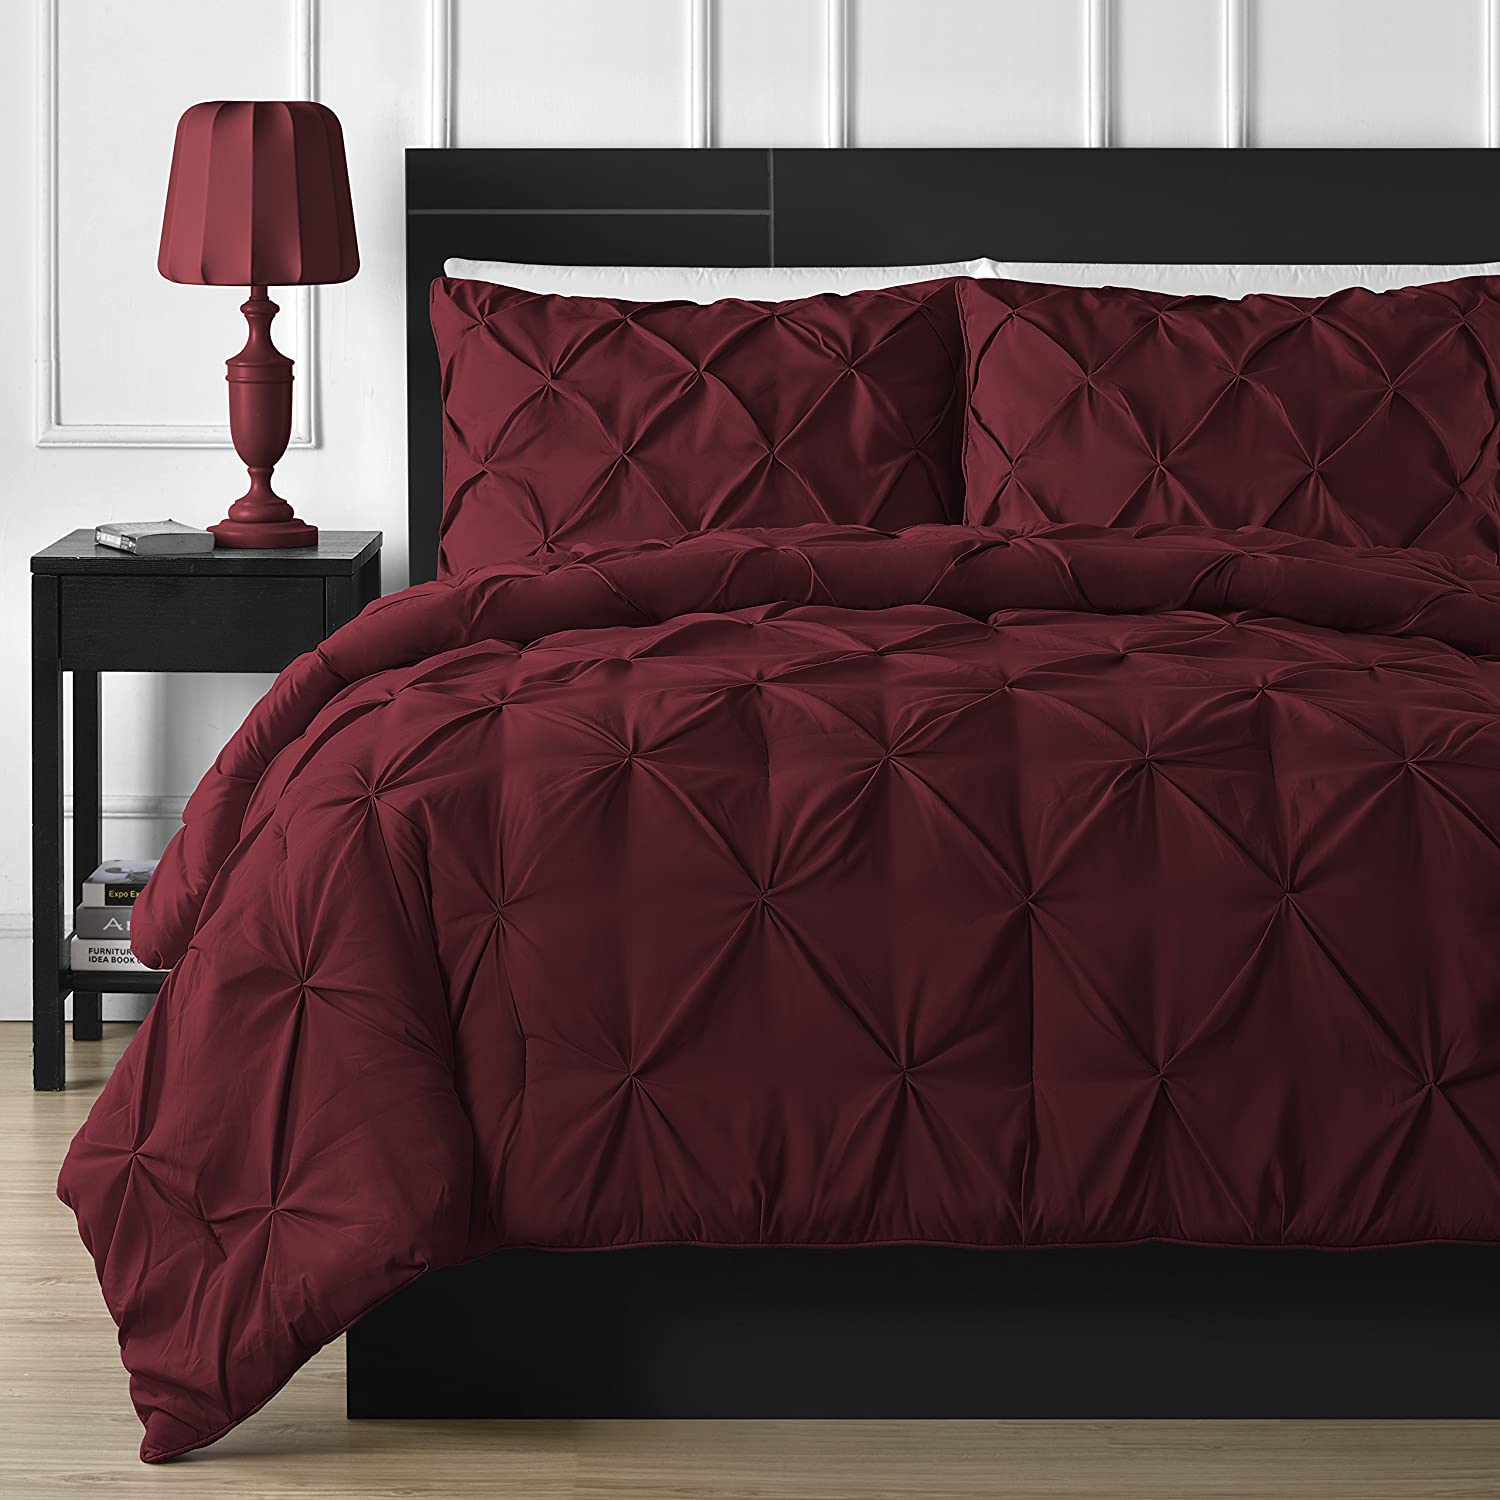 Comfy Bedding 3-piece Pinch Pleat Comforter Set (Full, Burgundy